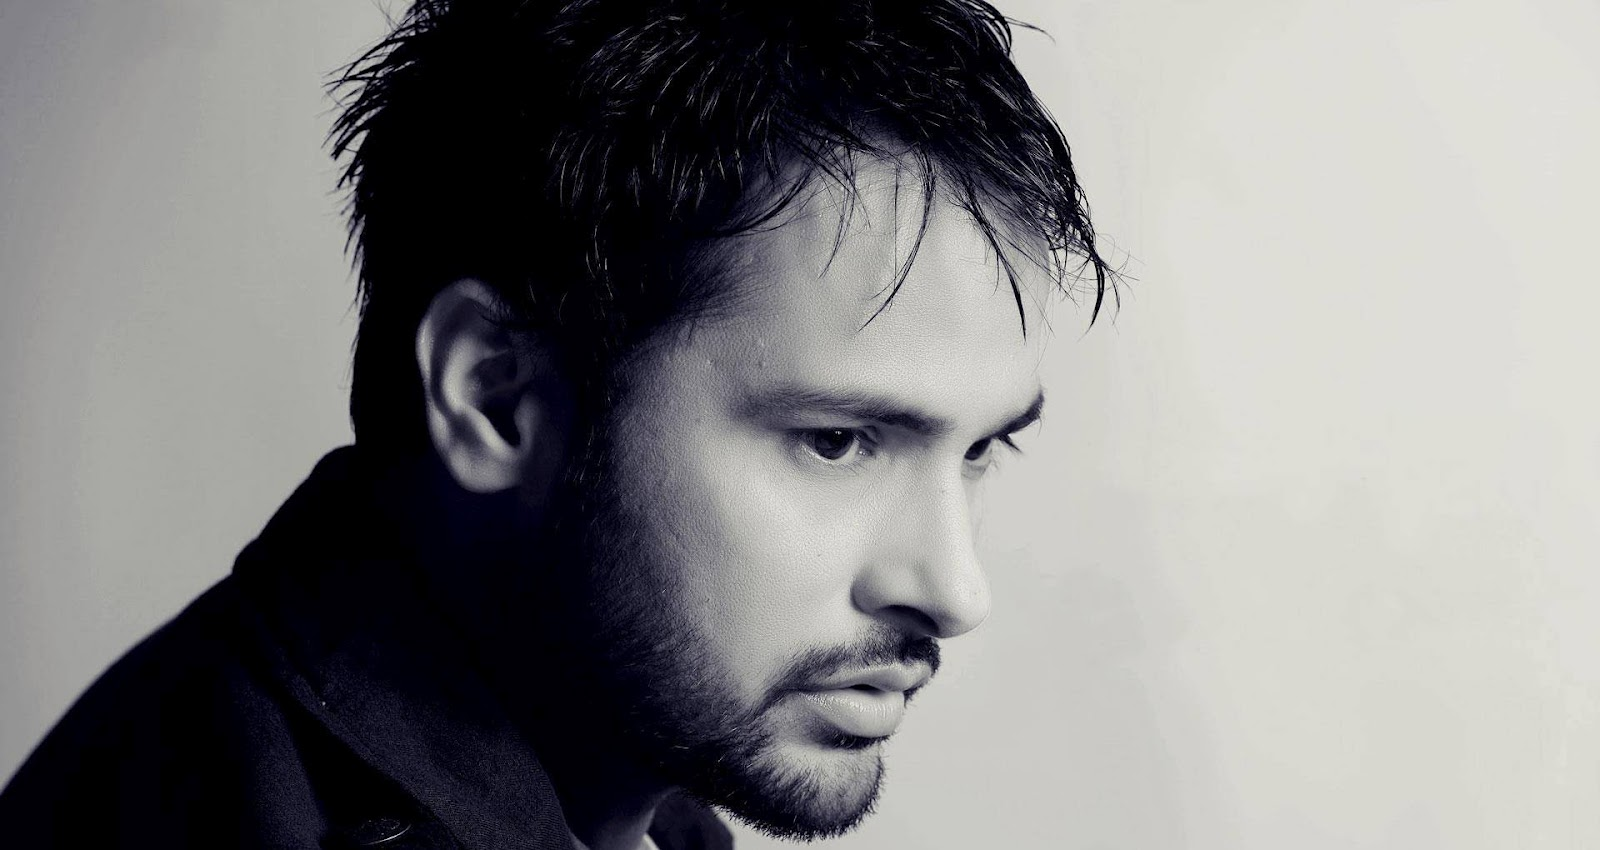 Gill Latest HD Wallpapers 2012   Punjabi Singer Wallpapers Fever 1600x850